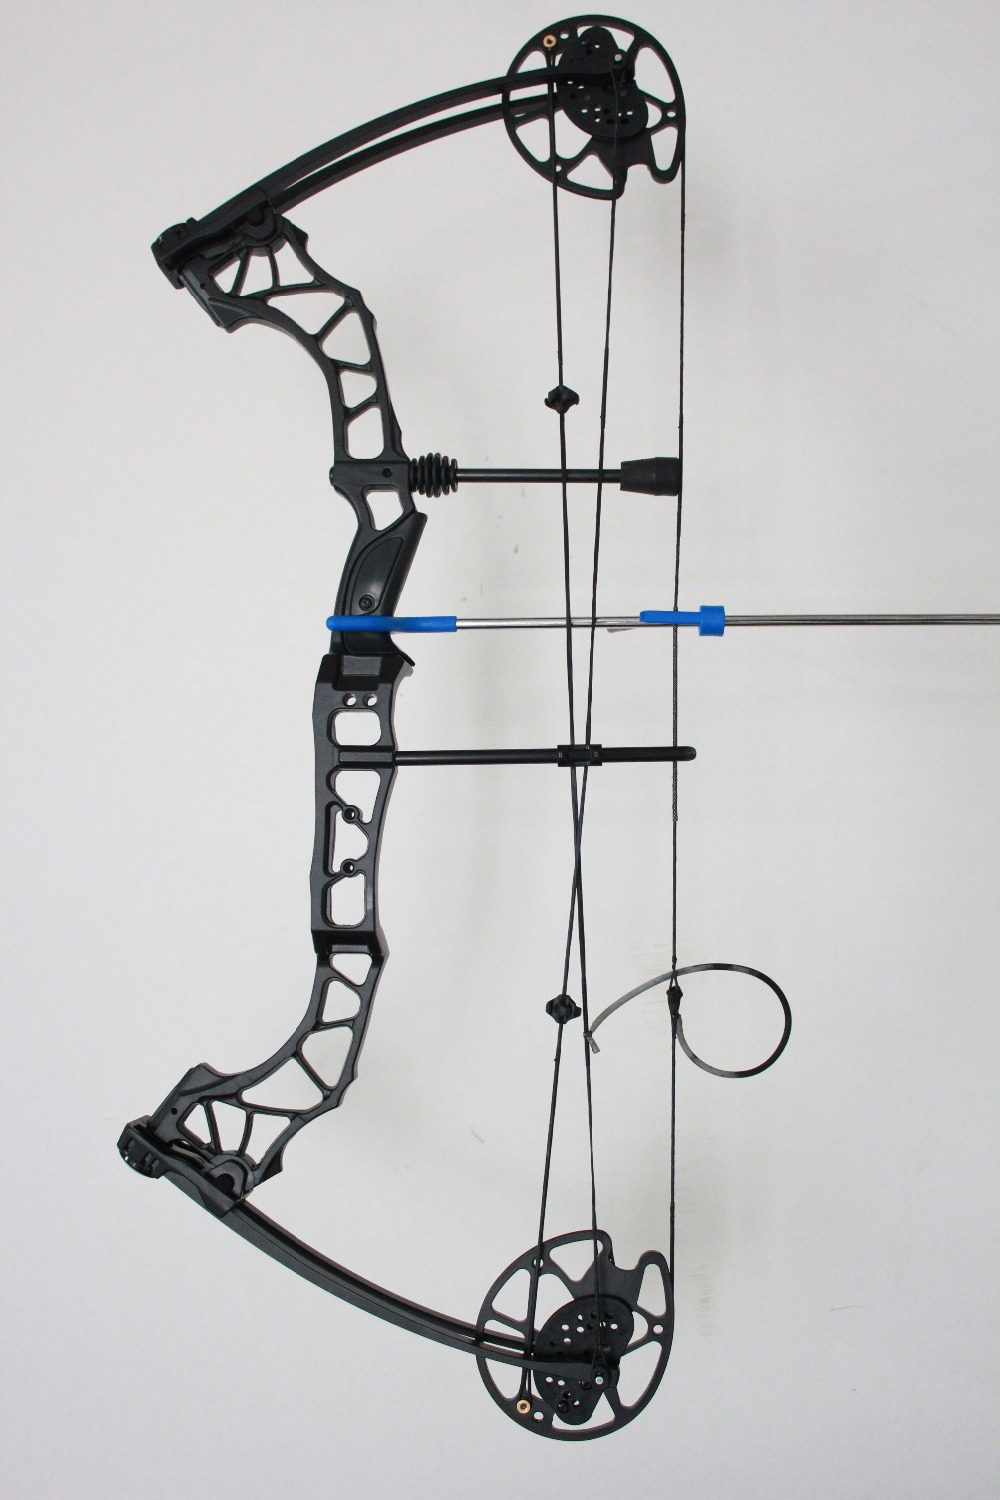 Kaimei Qin Archery hunting compound bow